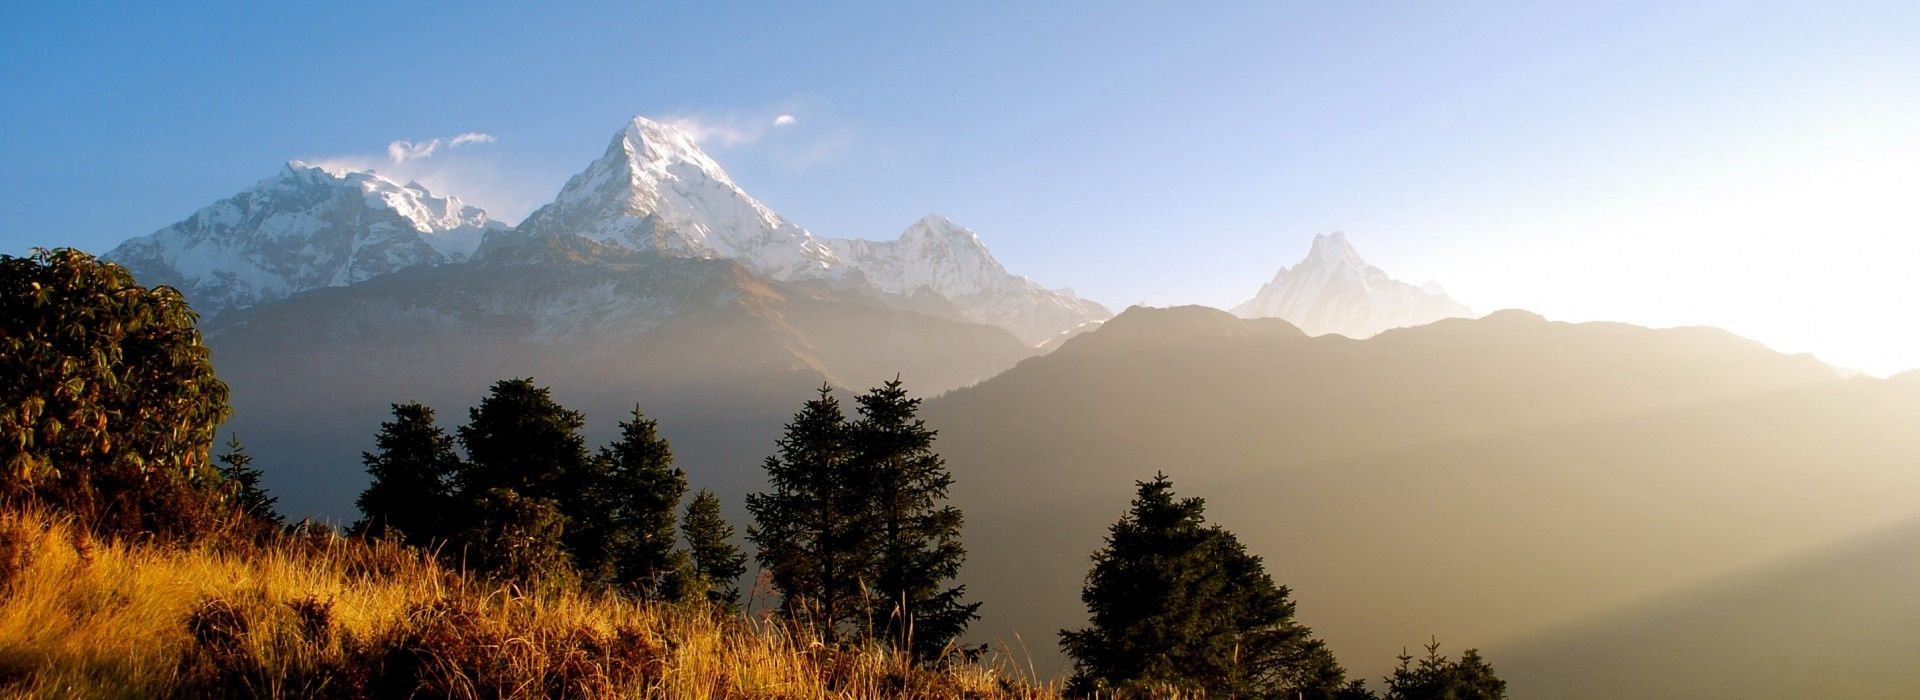 Cultural, religious and historic sites Tours in Nepal